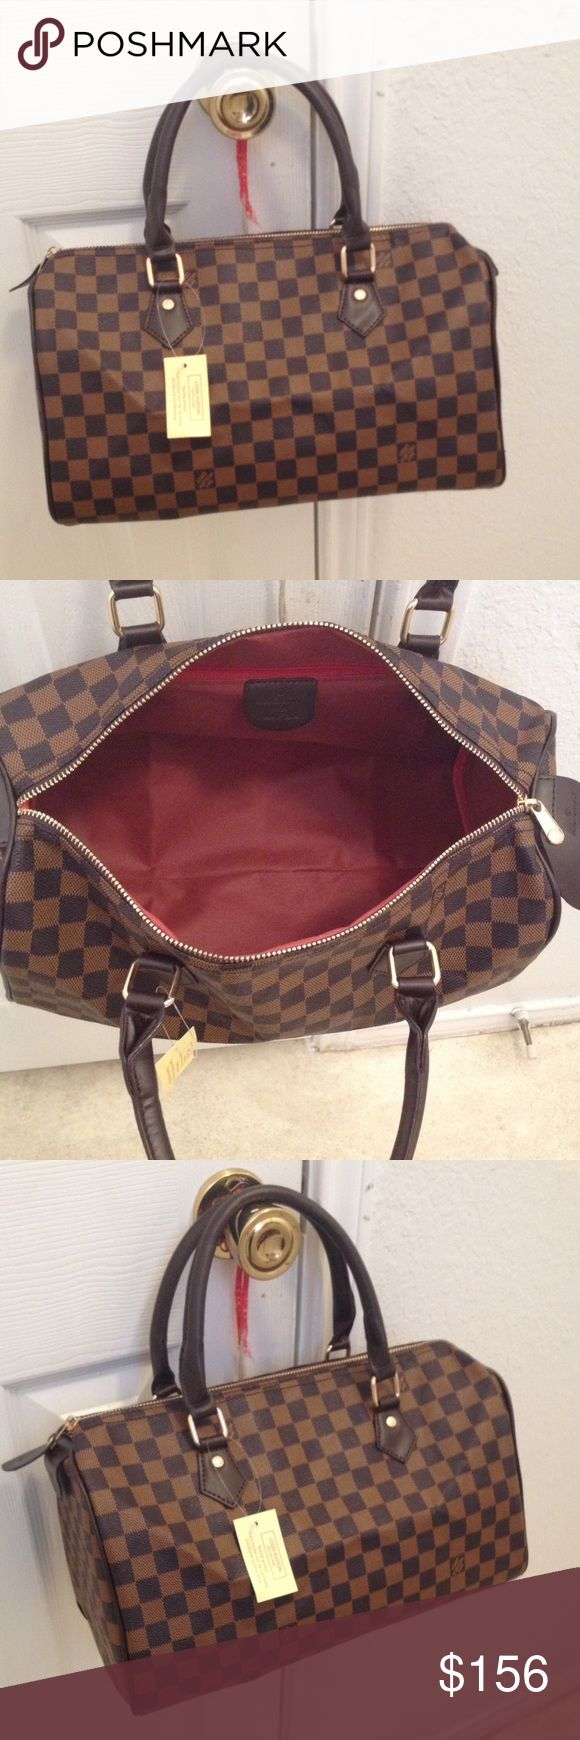 Speedy30 Cute bag!! Price reflect auth. Accepting reasonable offers Louis Vuitton Bags Shoulder Bags